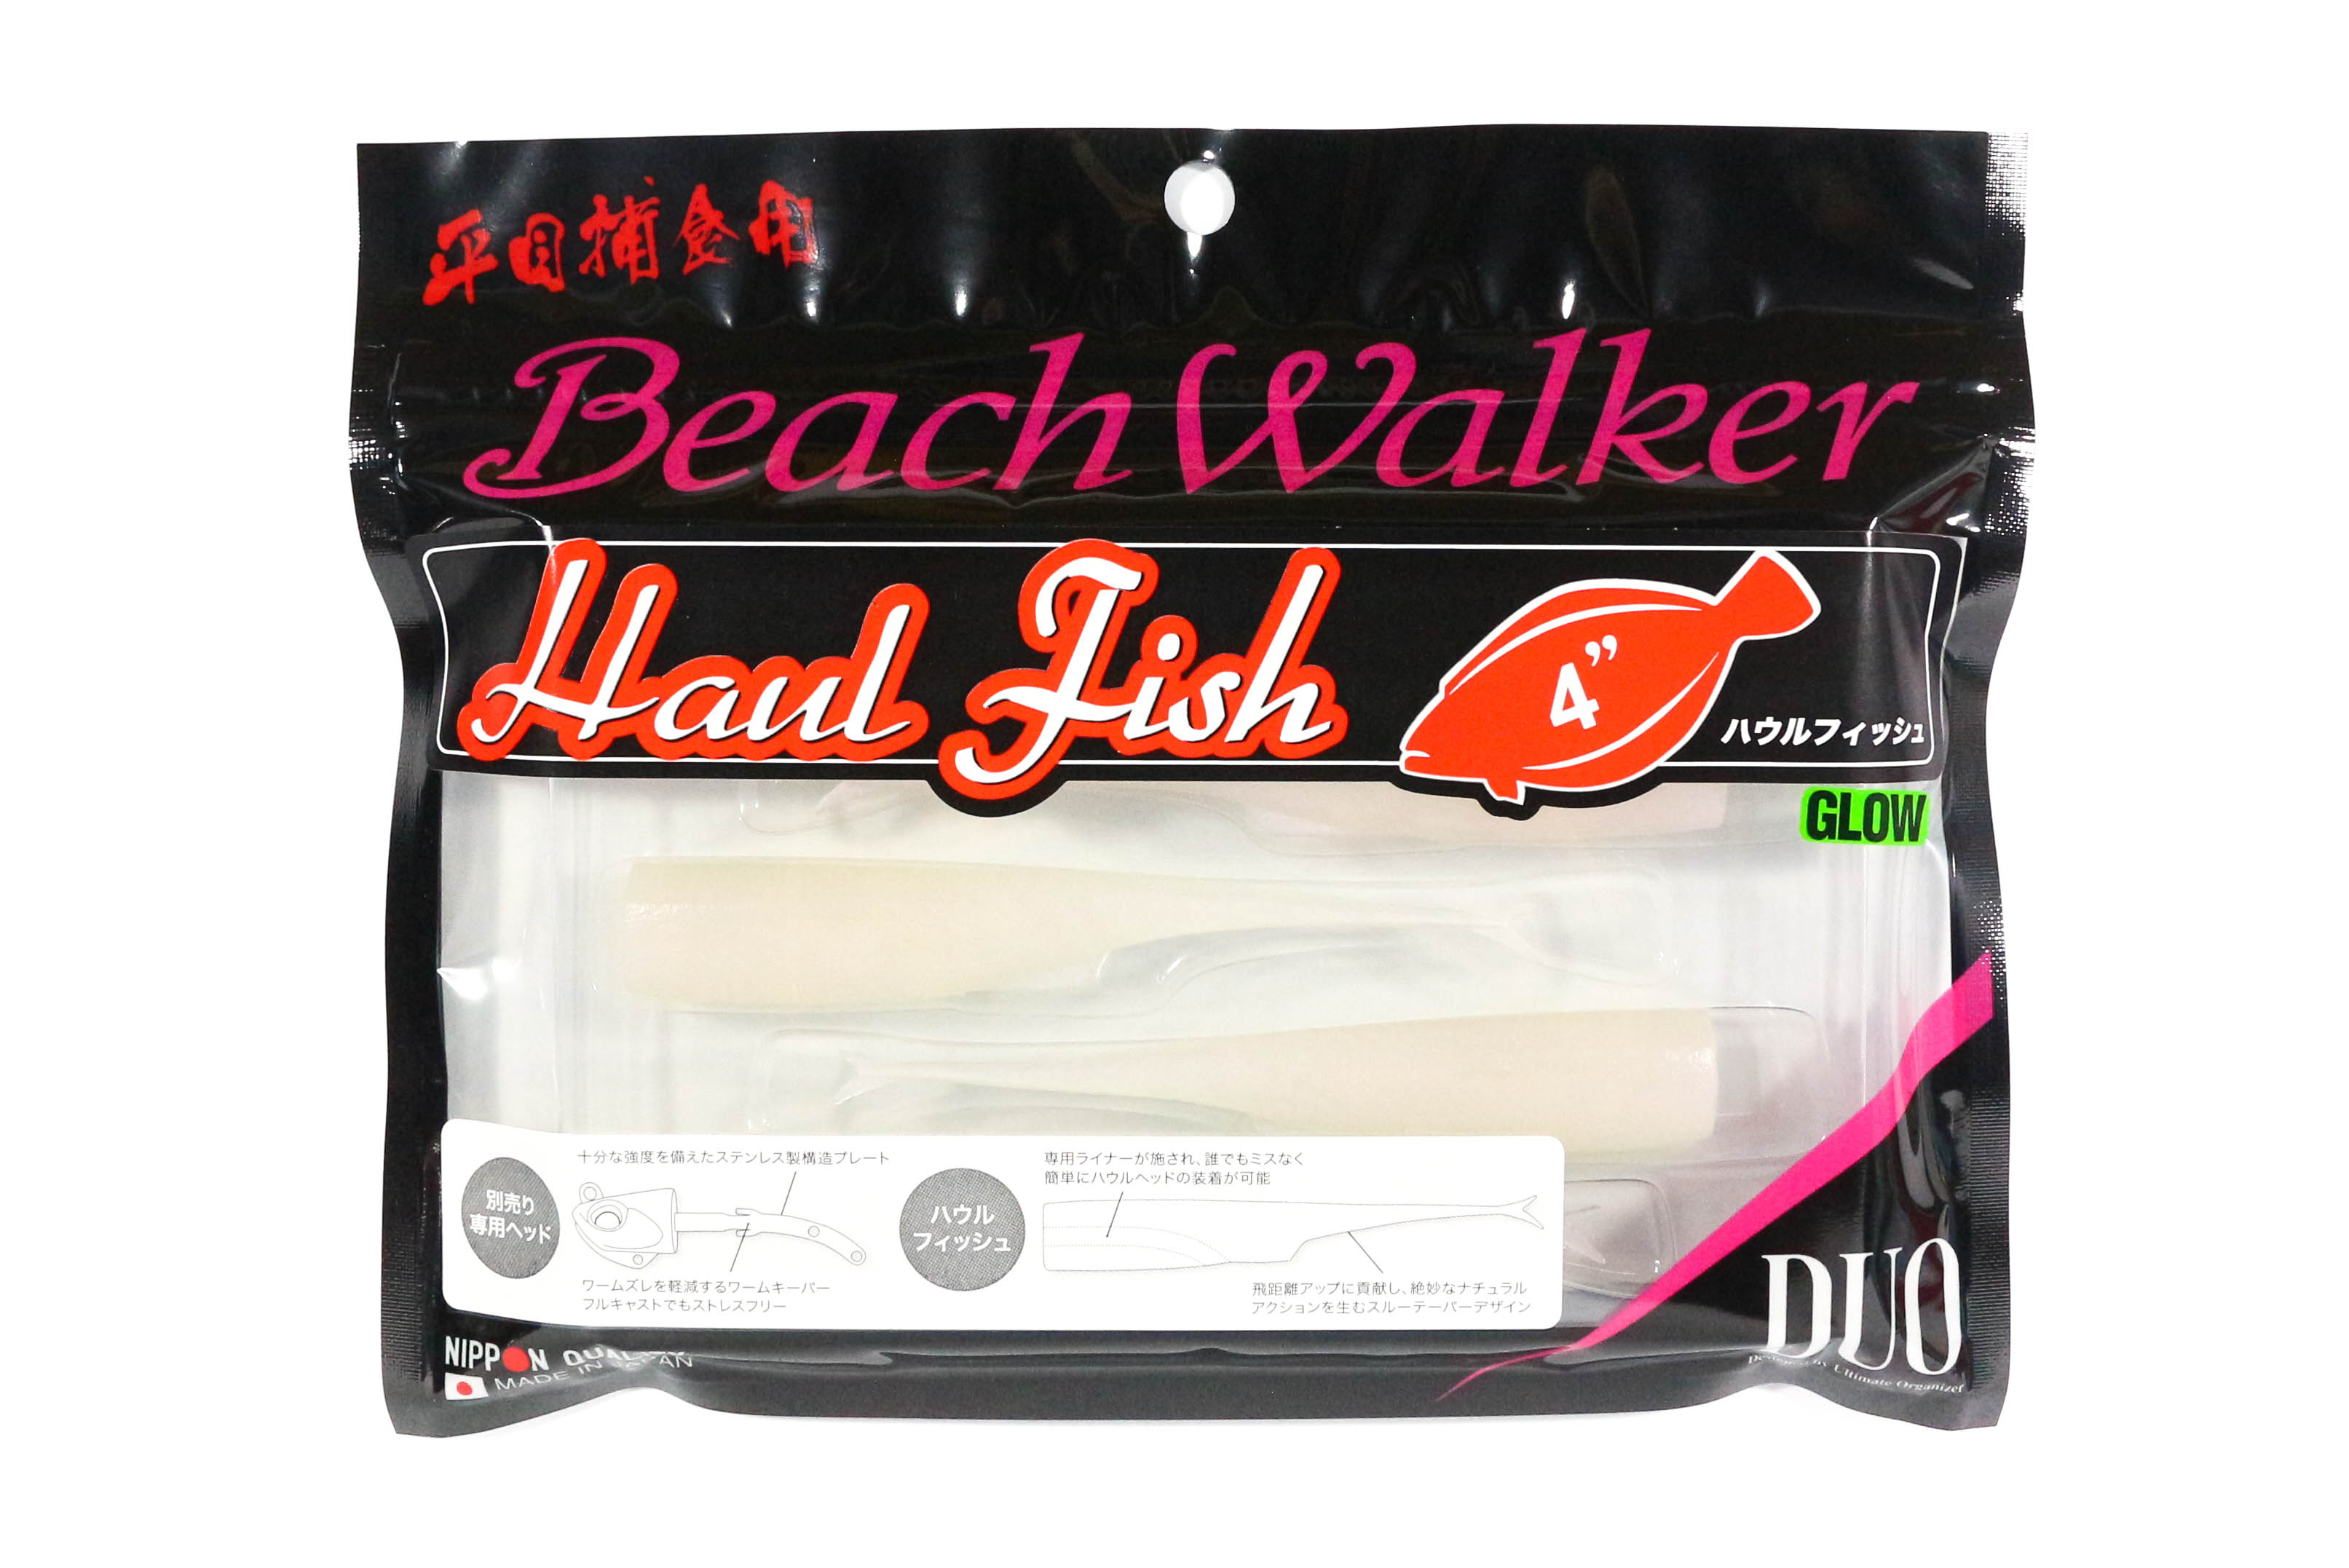 Duo Beach Walker Soft Plastic Haul Fish 4 Inches S001 (9680)